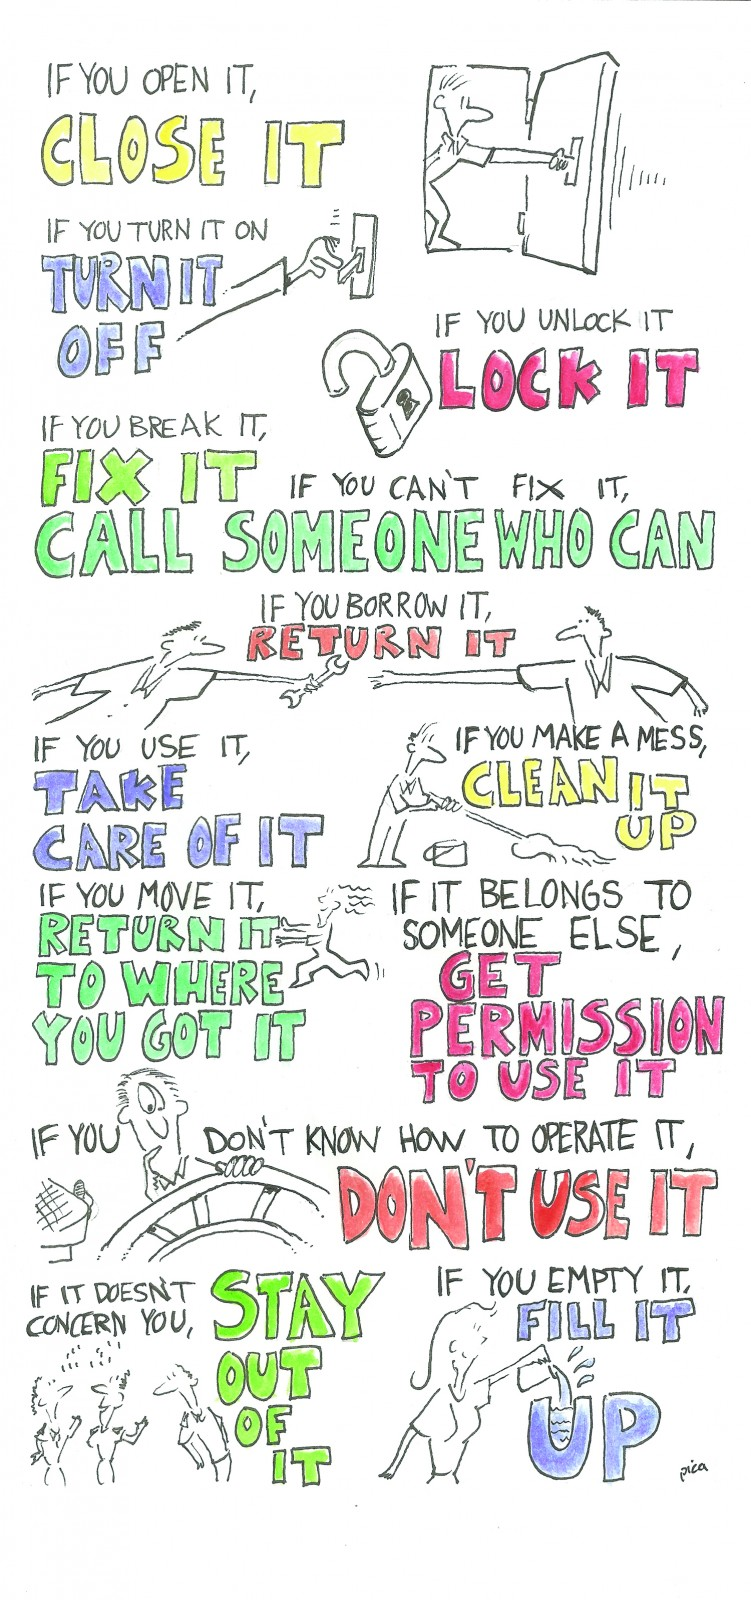 A captain shared these crew rules, illustrated by Steve Pica.